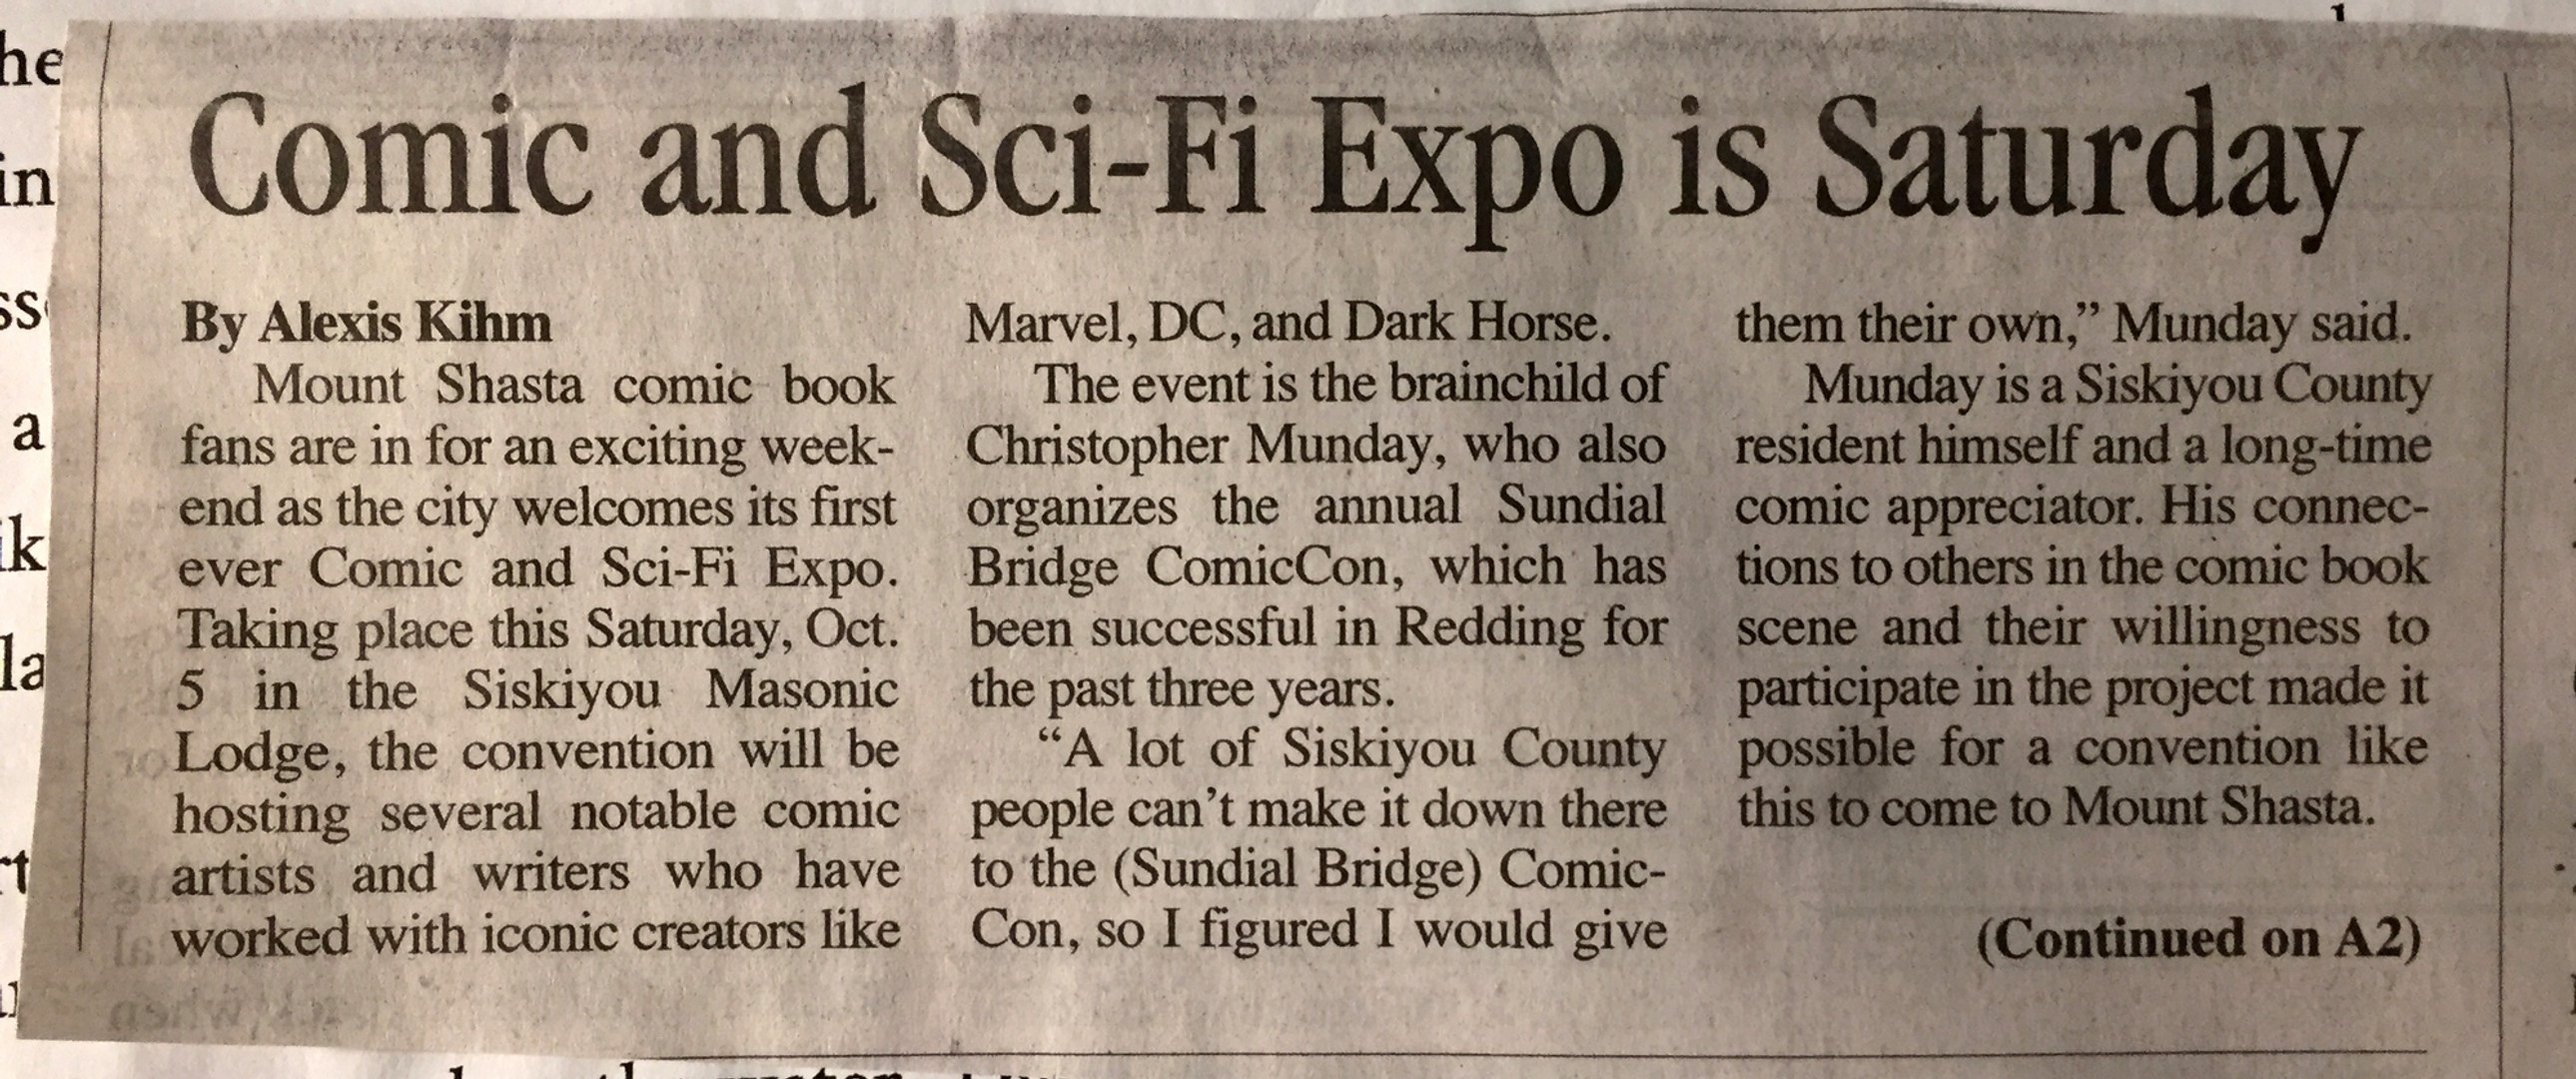 Comic and Sci-Fi Expo